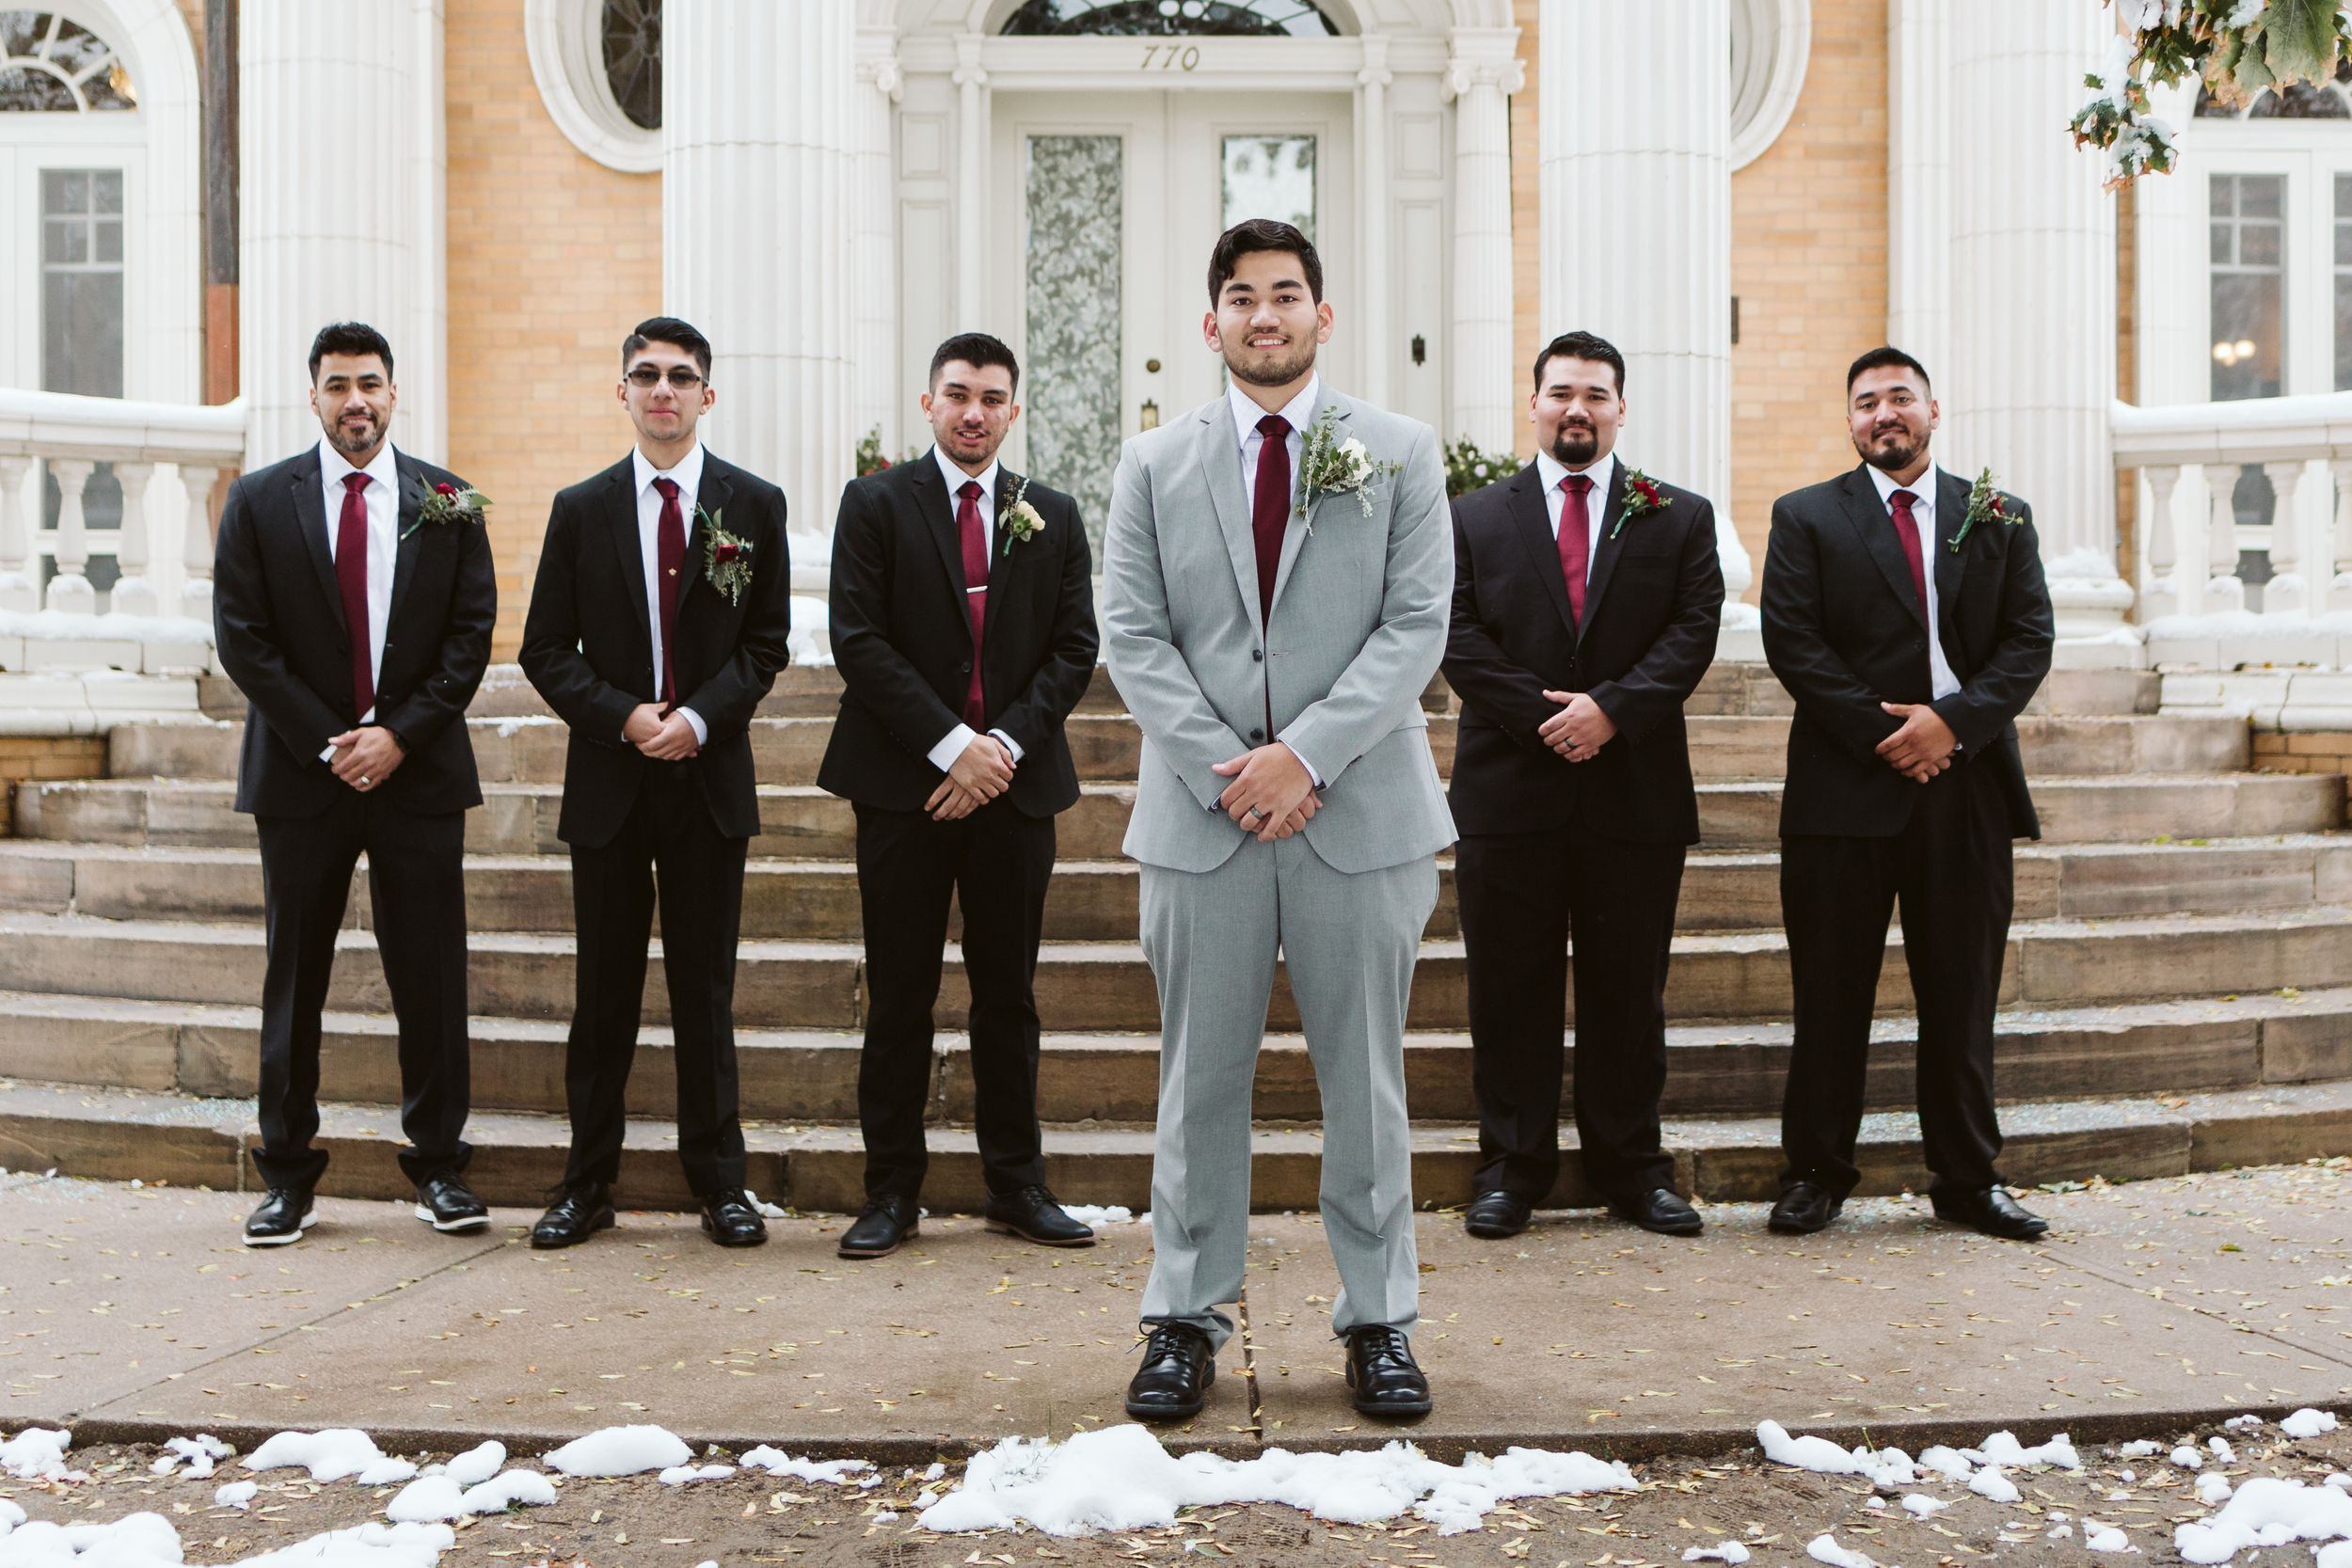 Denver wedding photography inspiration, groom and groomsmen portraits, best Colorado venues, winter wedding